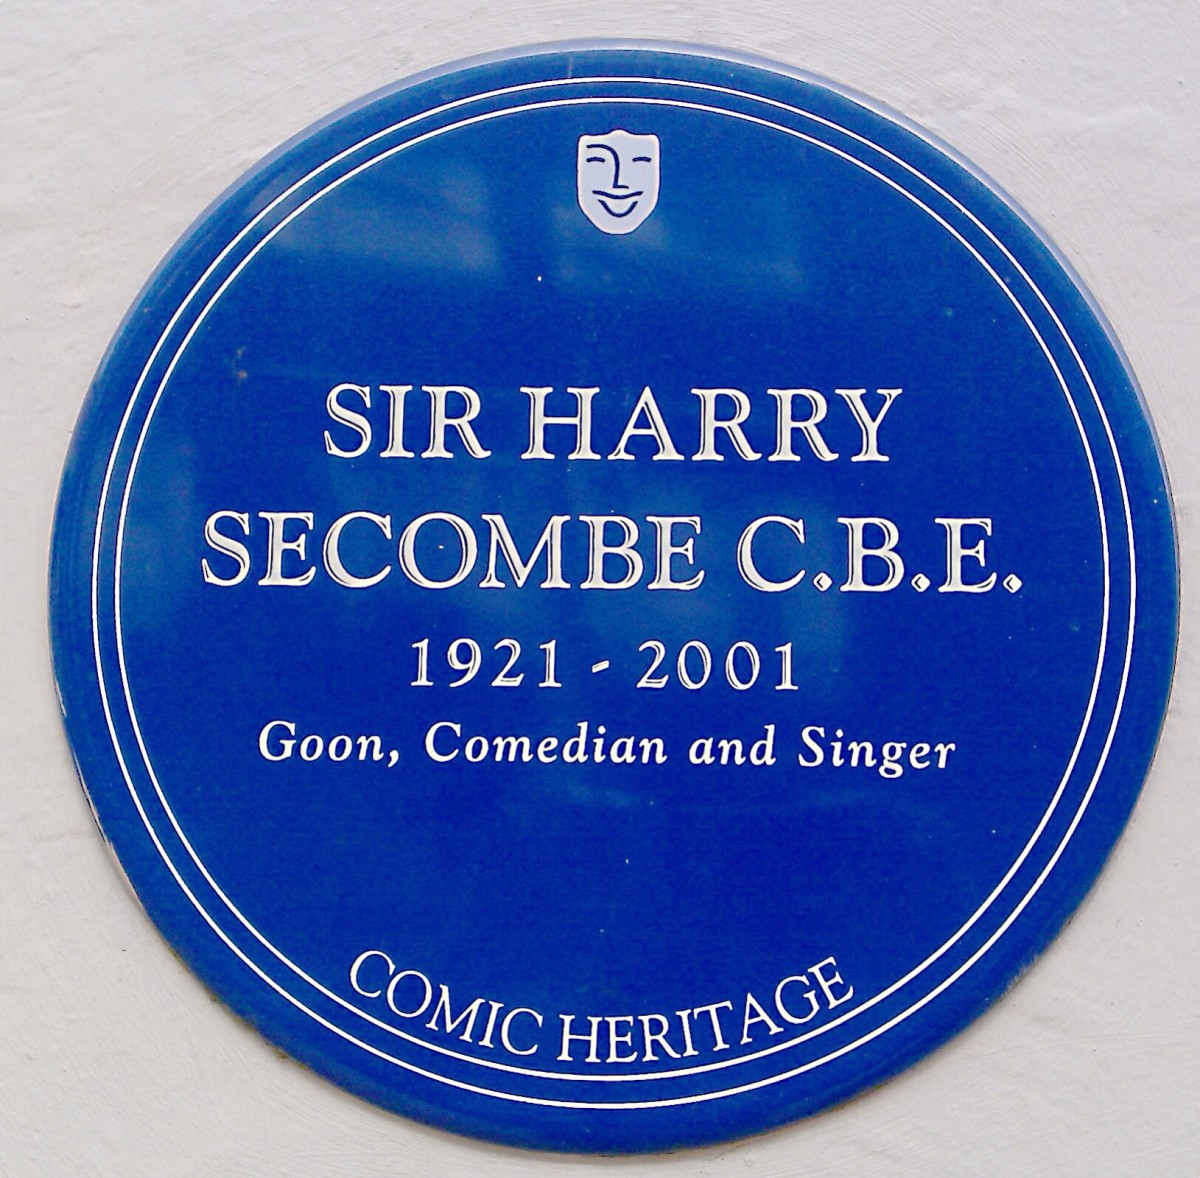 The Heritage Foundation in the United Kingdom creates blue plaques to honour entertainers.